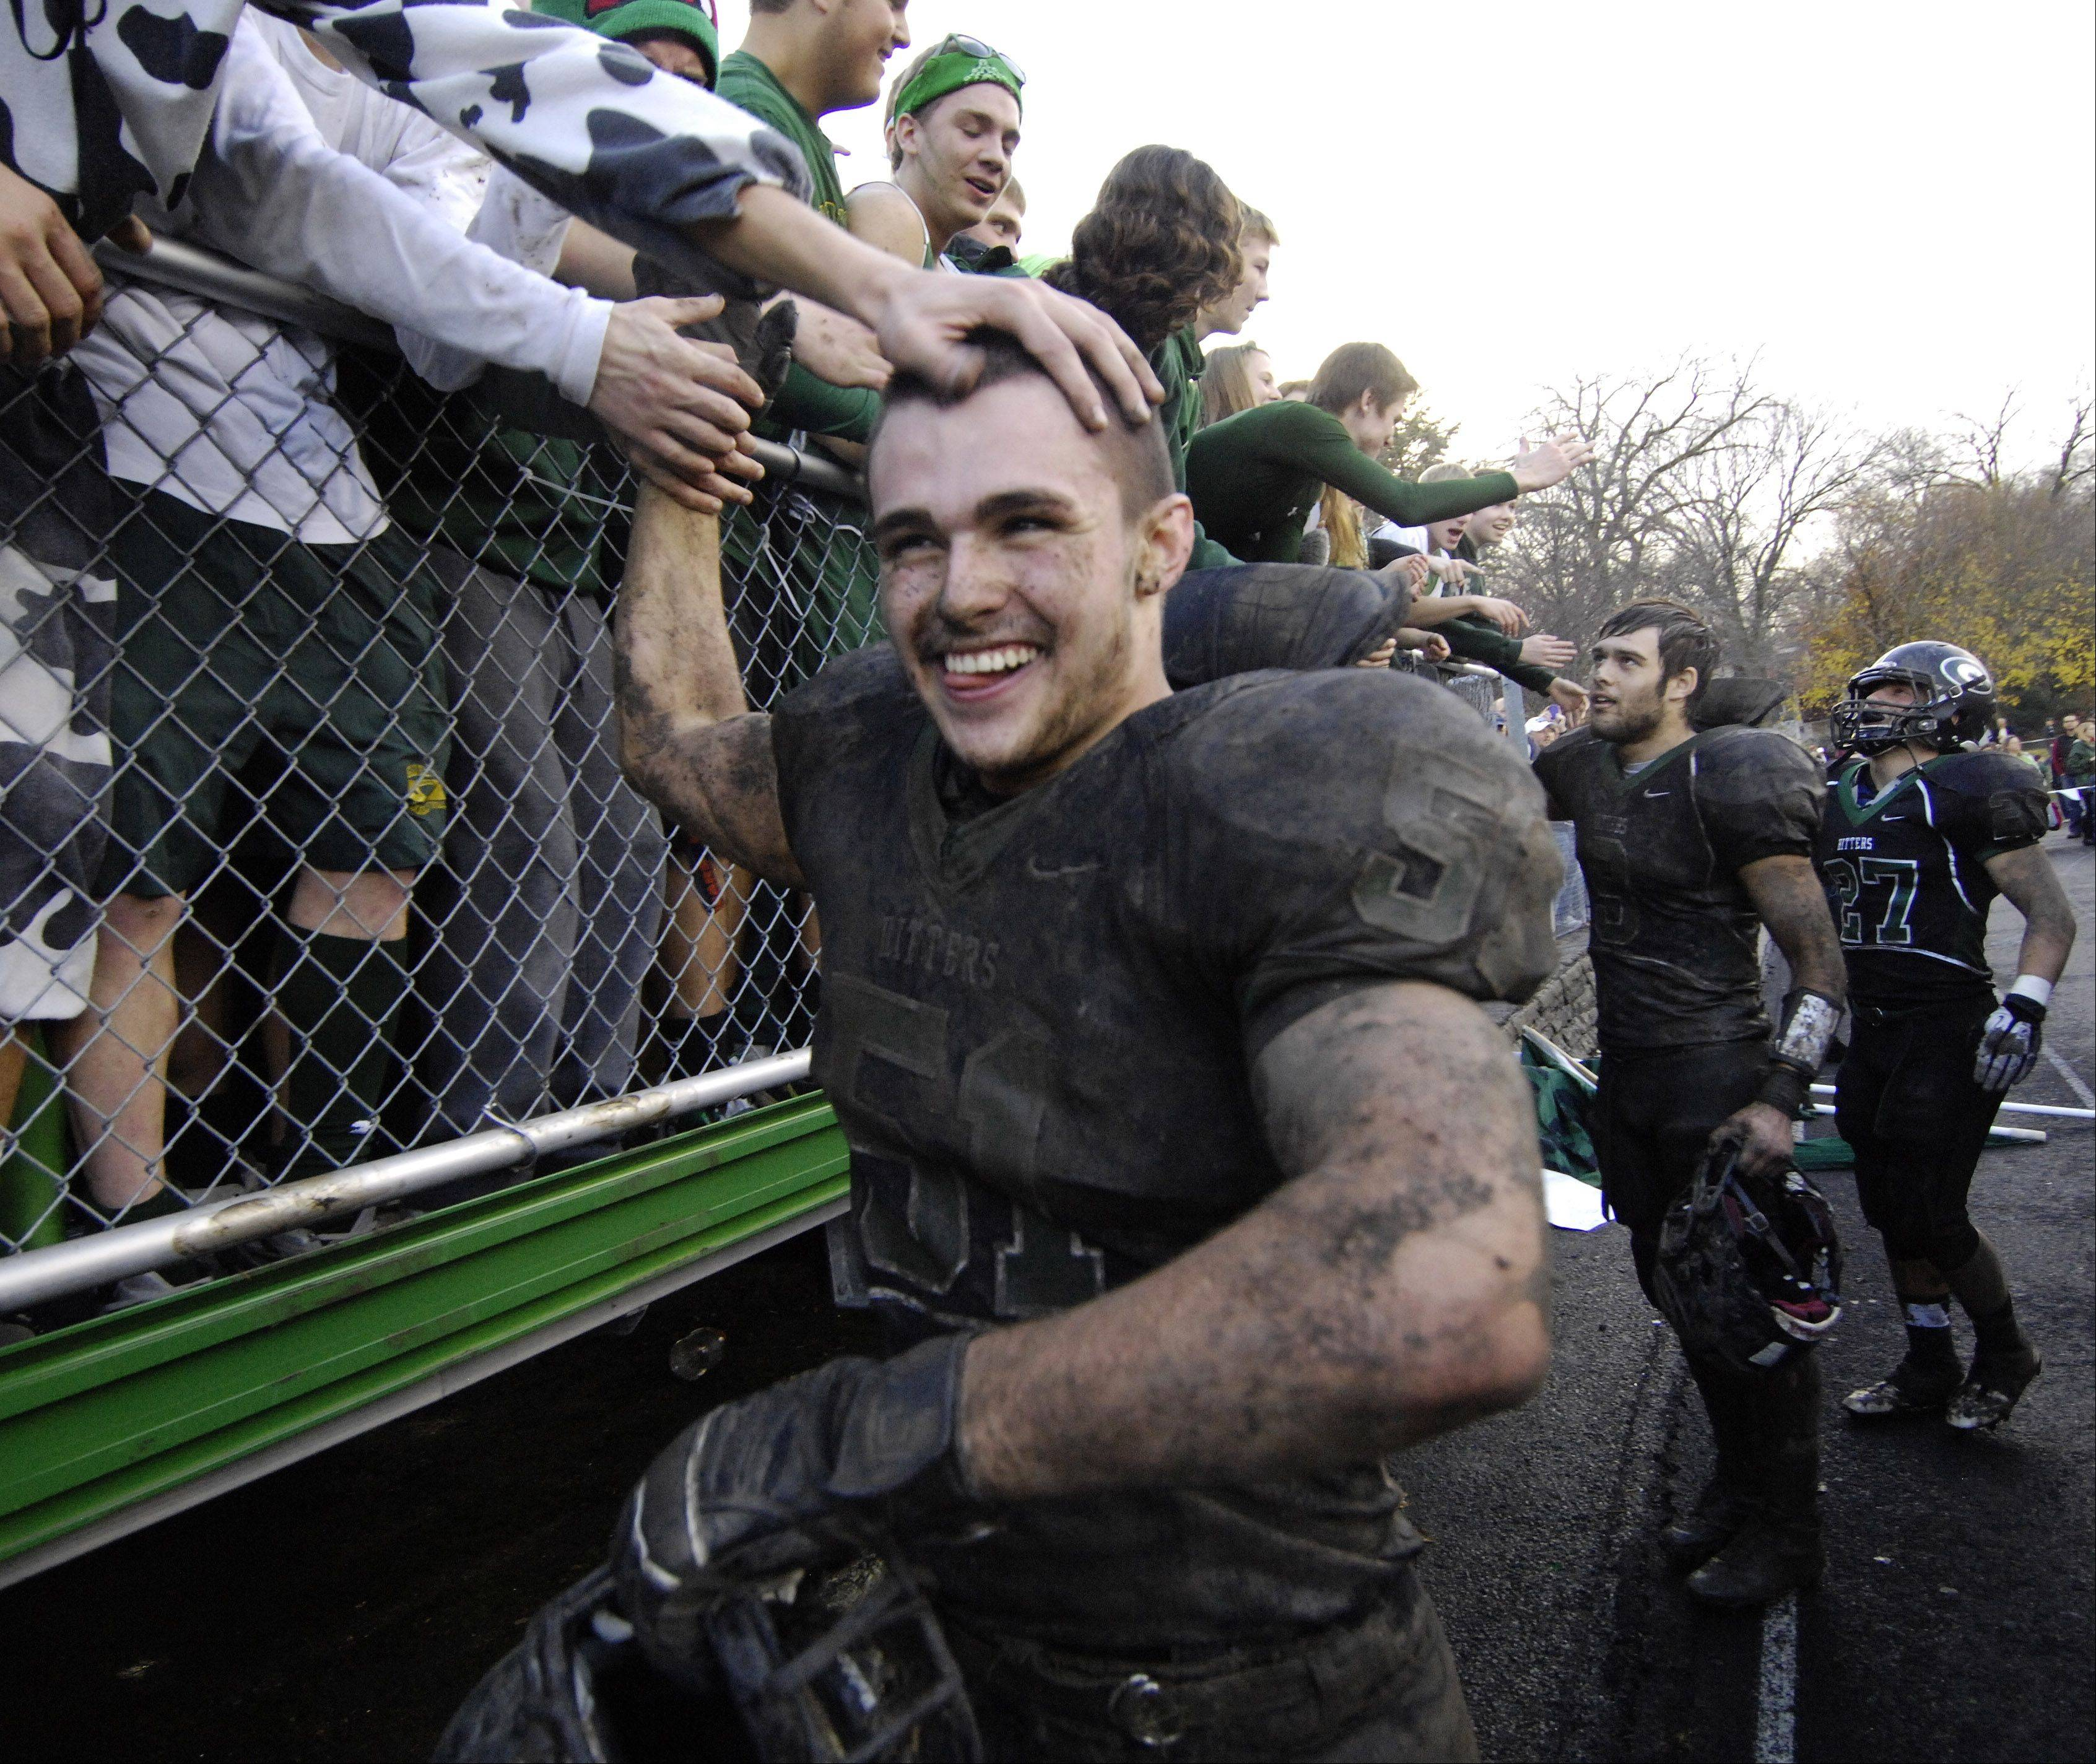 Glenbard West's Nick Garland receives congratulations from fans following Saturday's 3-0 victory over Wheaton North.